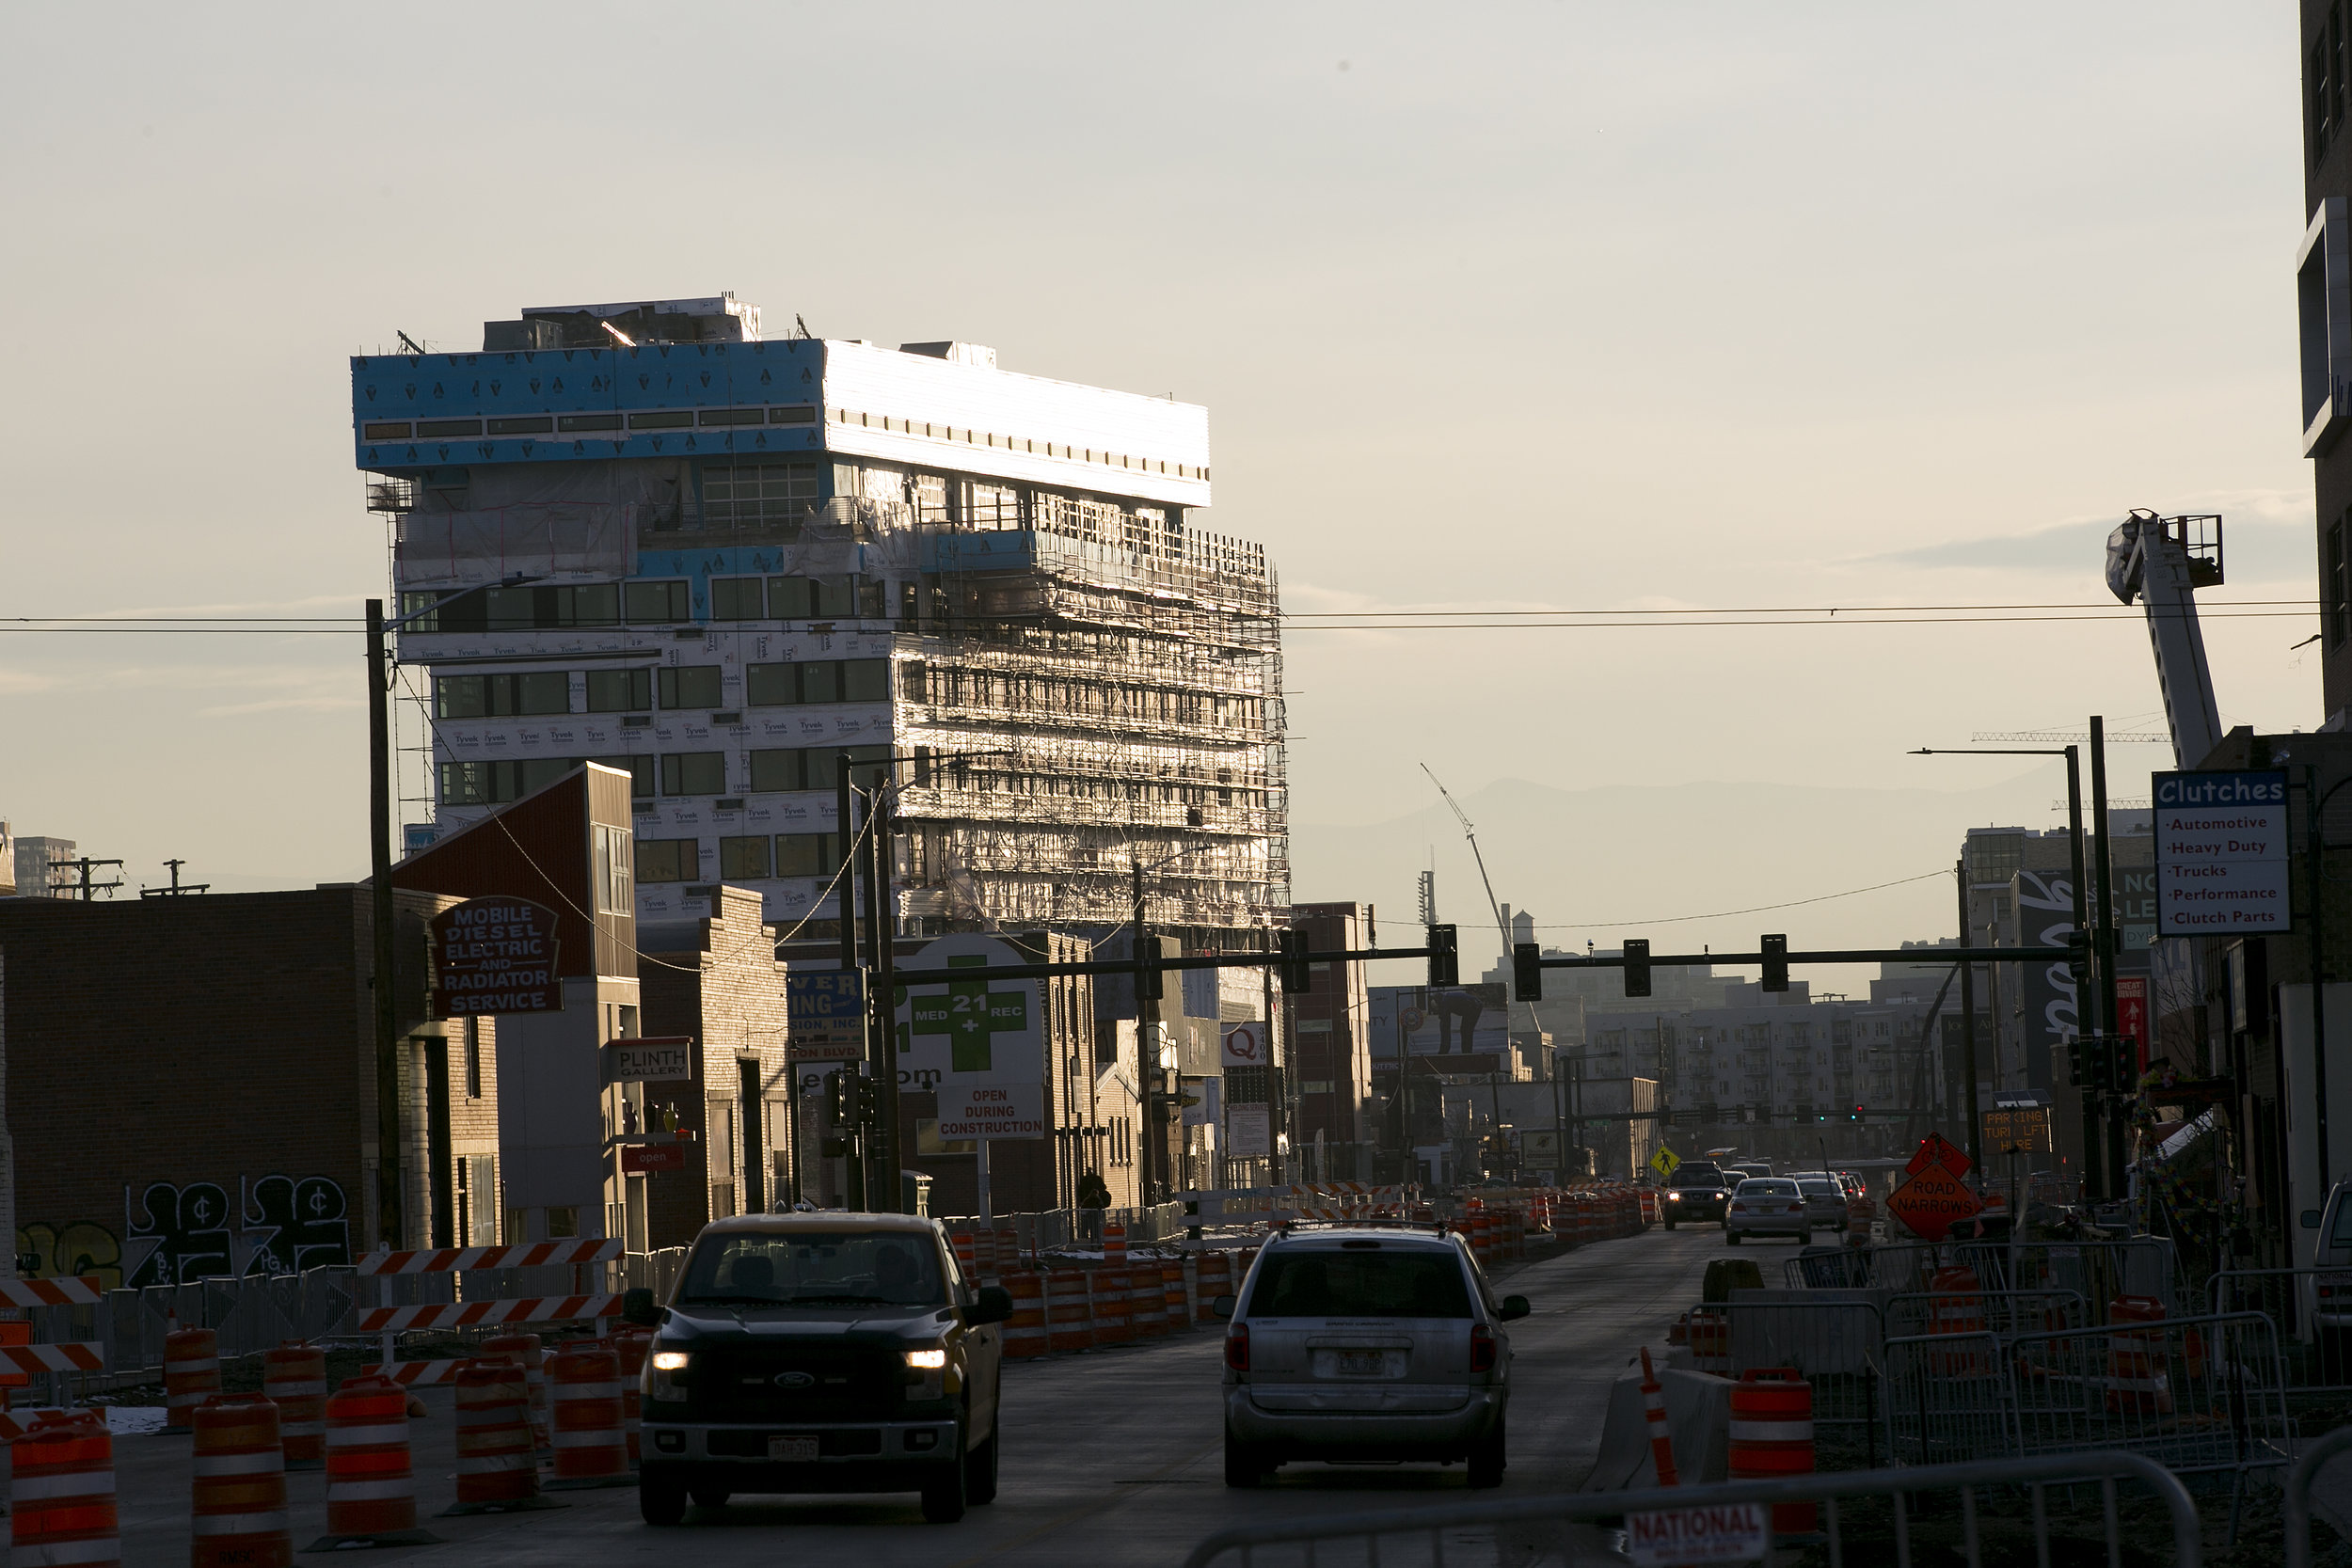 Ongoing construction on Brighton Blvd. in River North, one of the most rapidly developing neighborhoods in Denver. Jordan Artach moved out of a nearby apartment after rent rose $500 in a single month. (Credit: Giles Clasen)